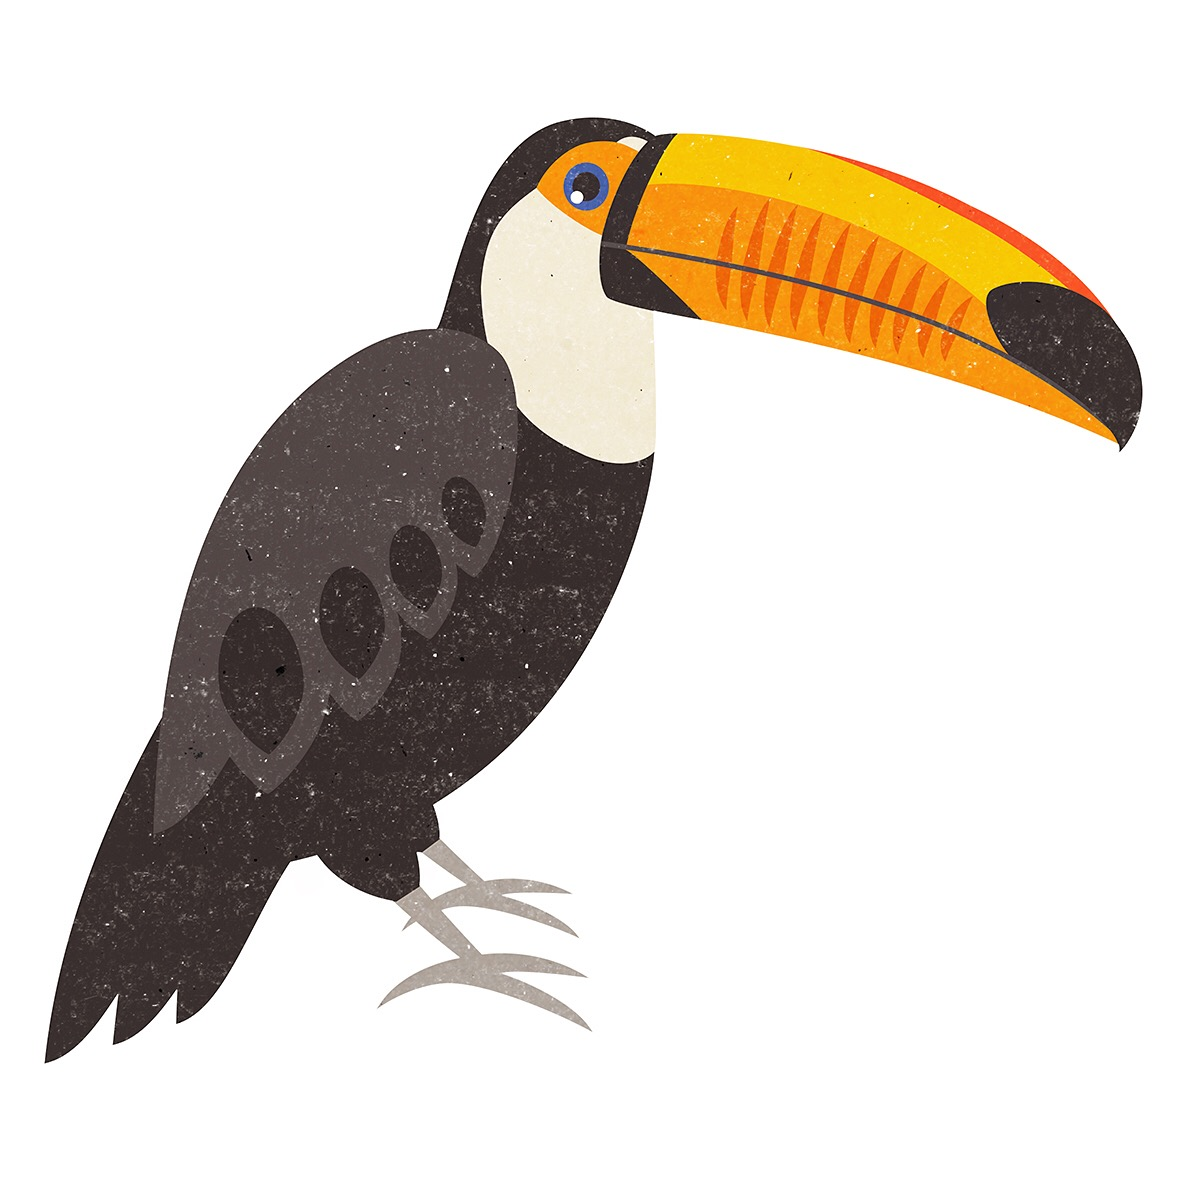 TUCAN ILLUSTRATION